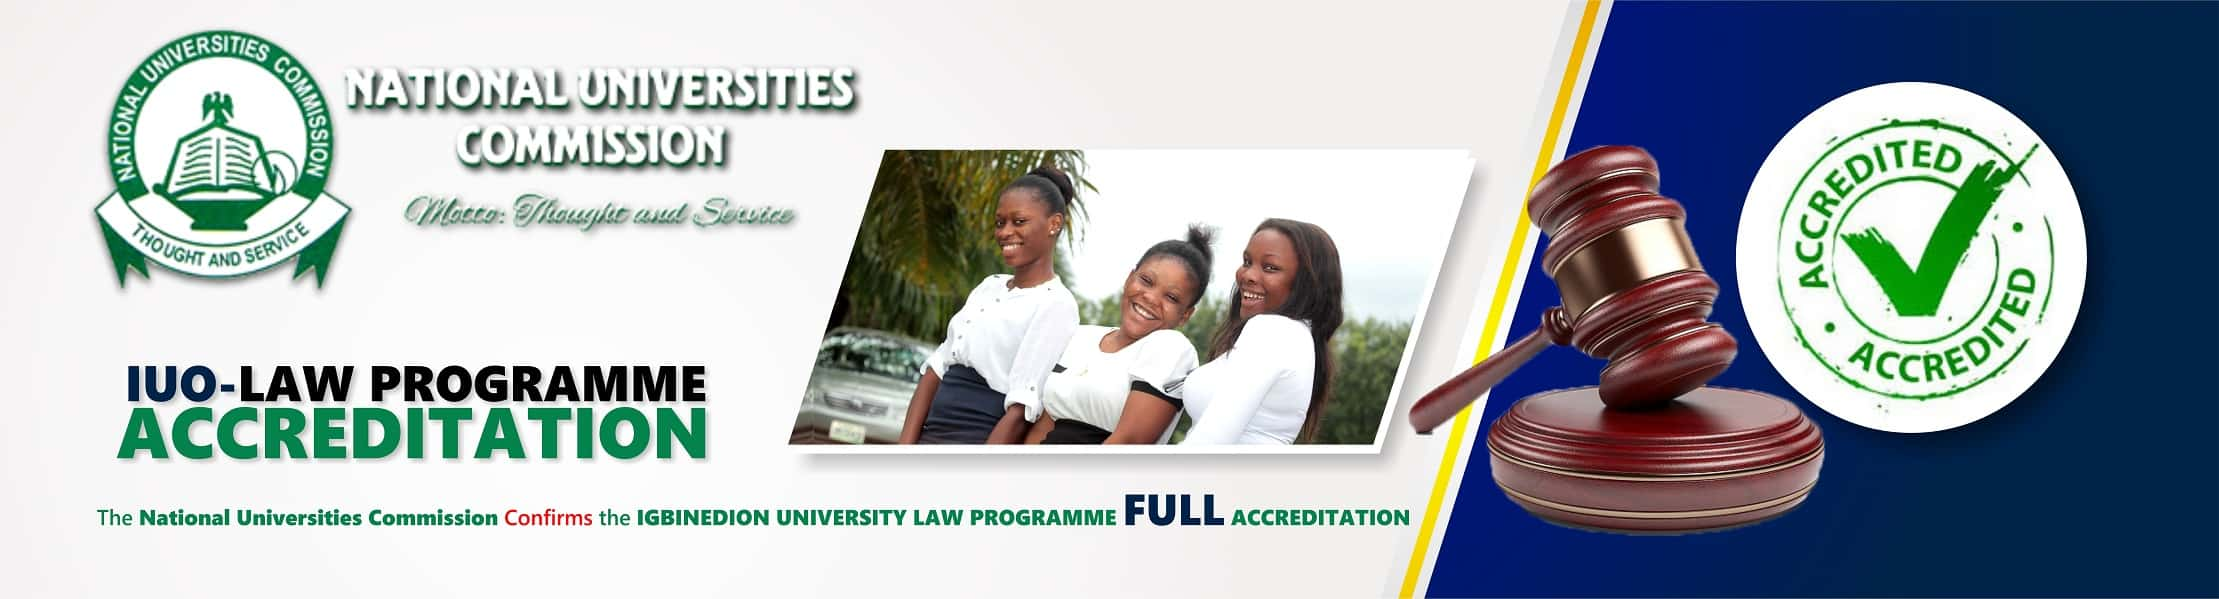 IUO law programme accreditation